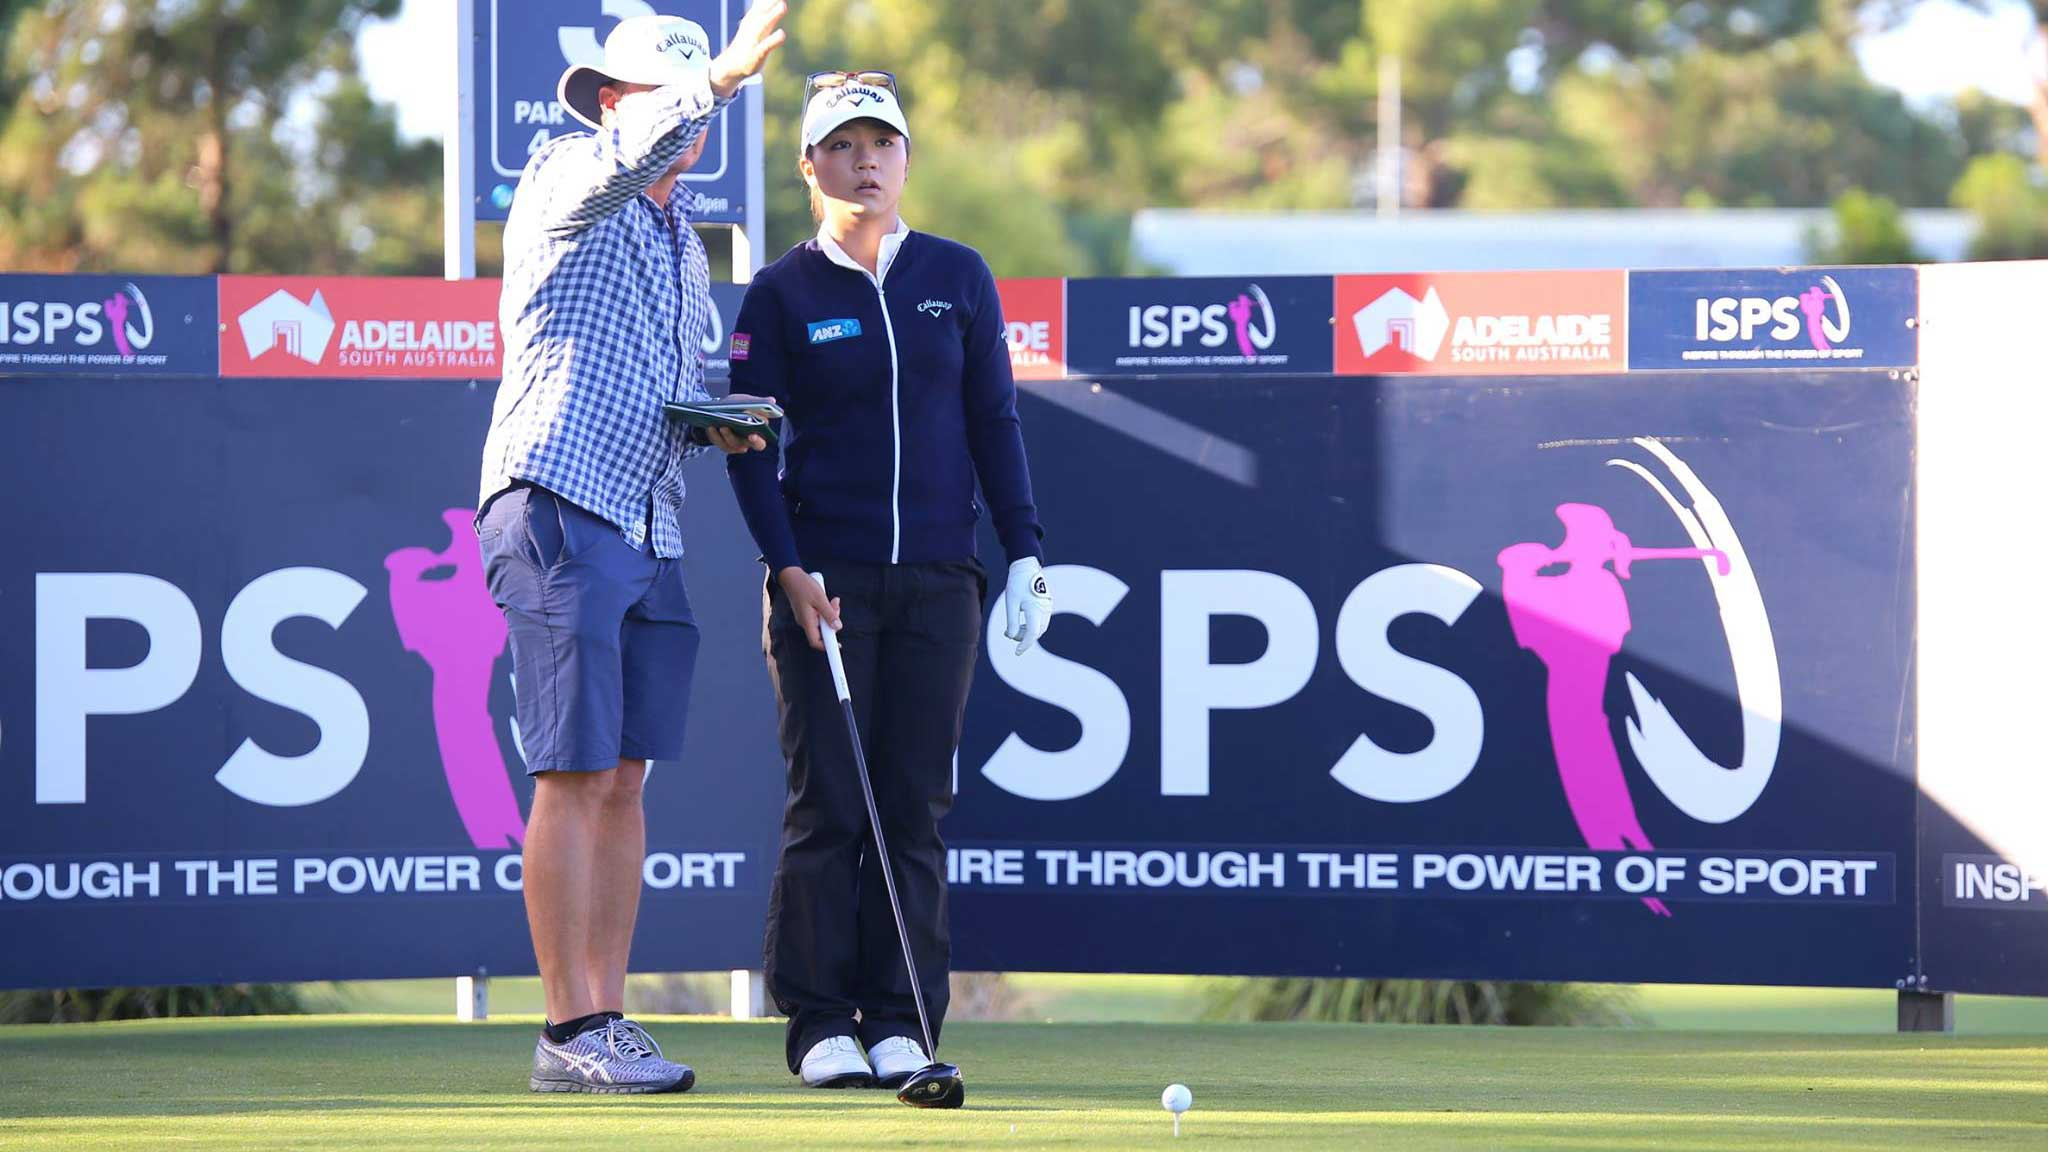 Lydia Ko during a practice round before the 2016 ISPS Handa Women's Australian Open